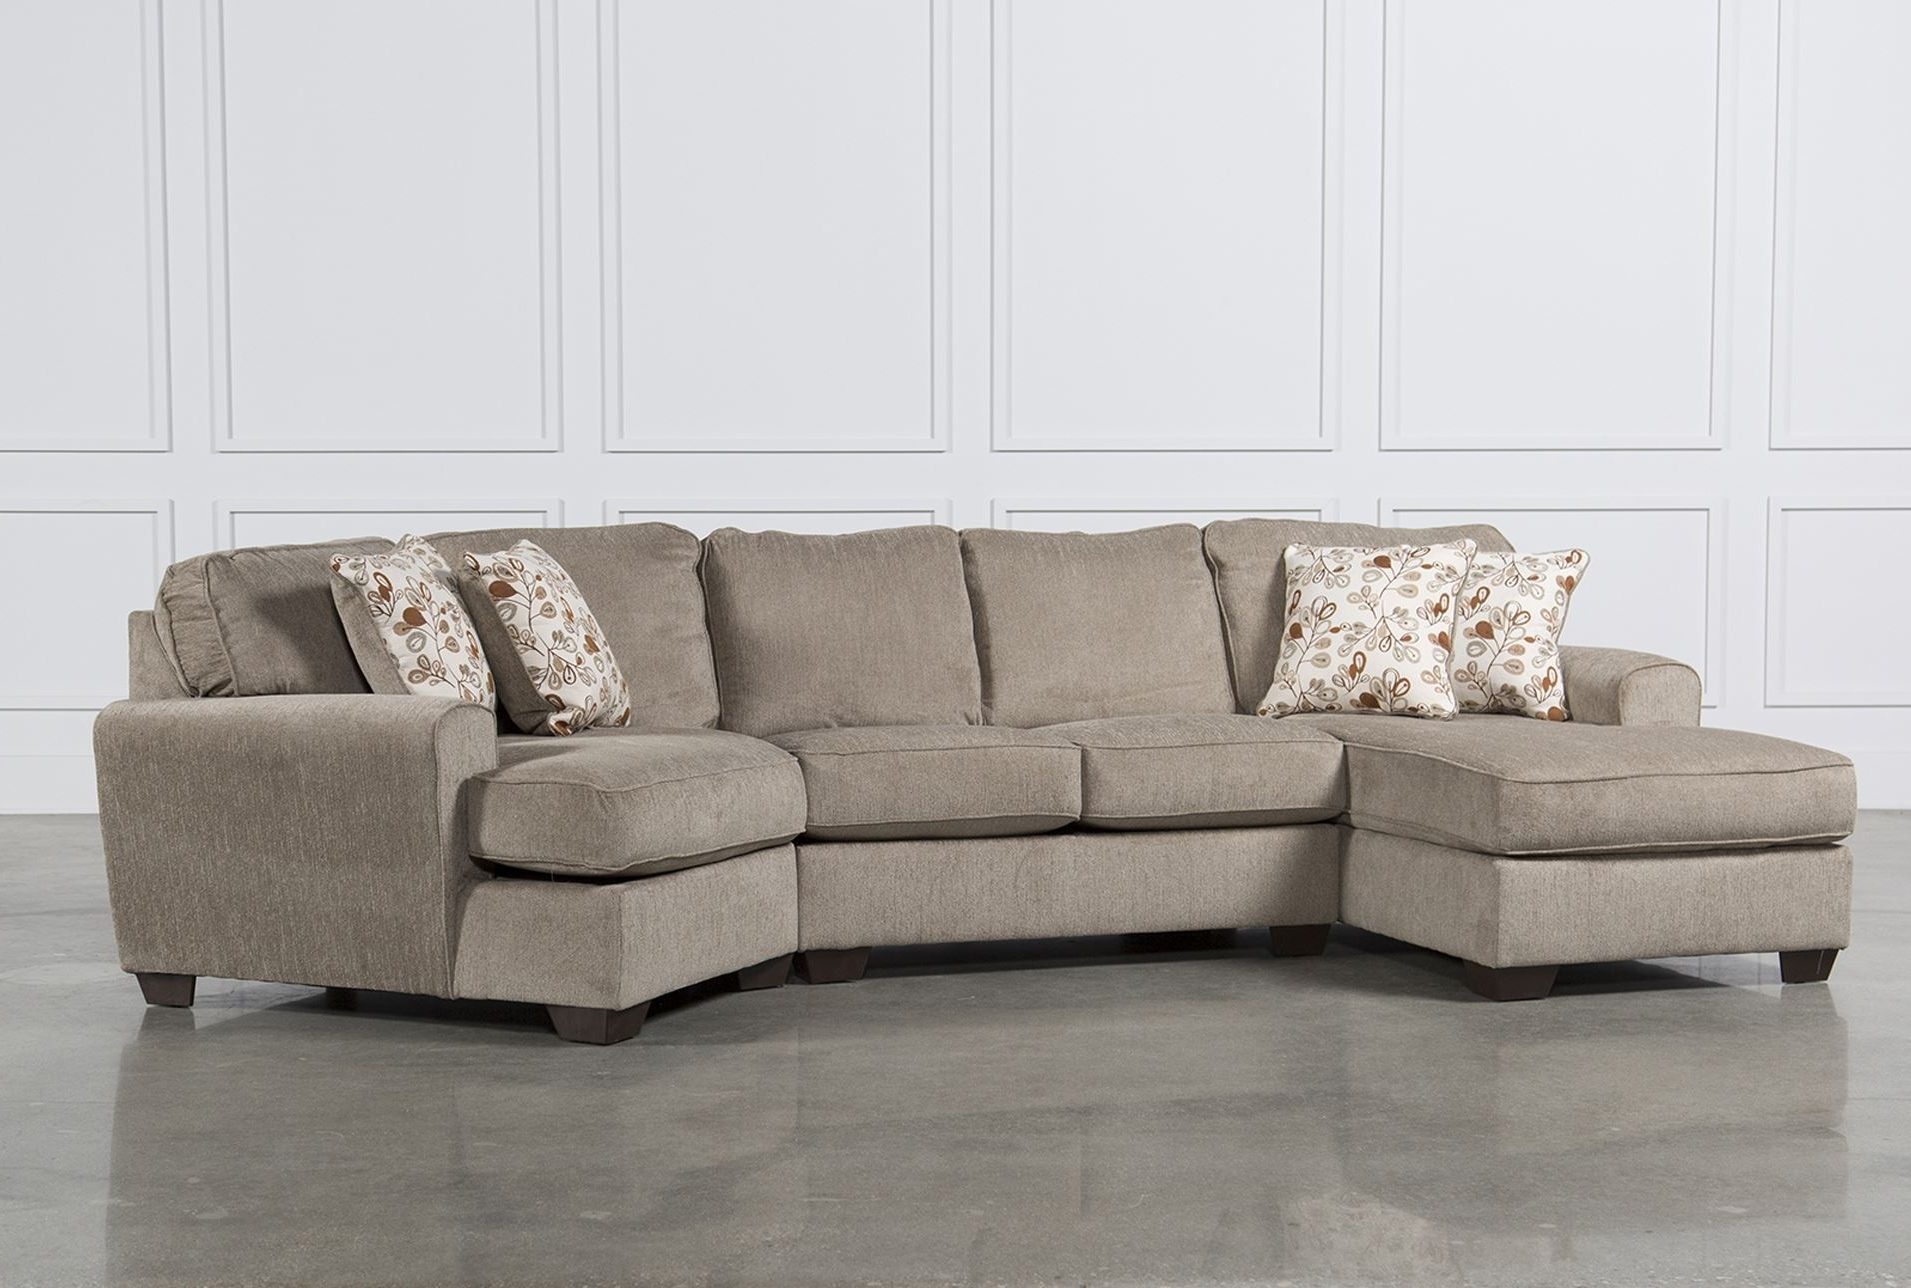 Sectional Sofas With Cuddler Chaise Within Most Recently Released Patola Park 4 Piece Sectional W Raf Cuddler Living Spaces In Sofa (View 3 of 15)